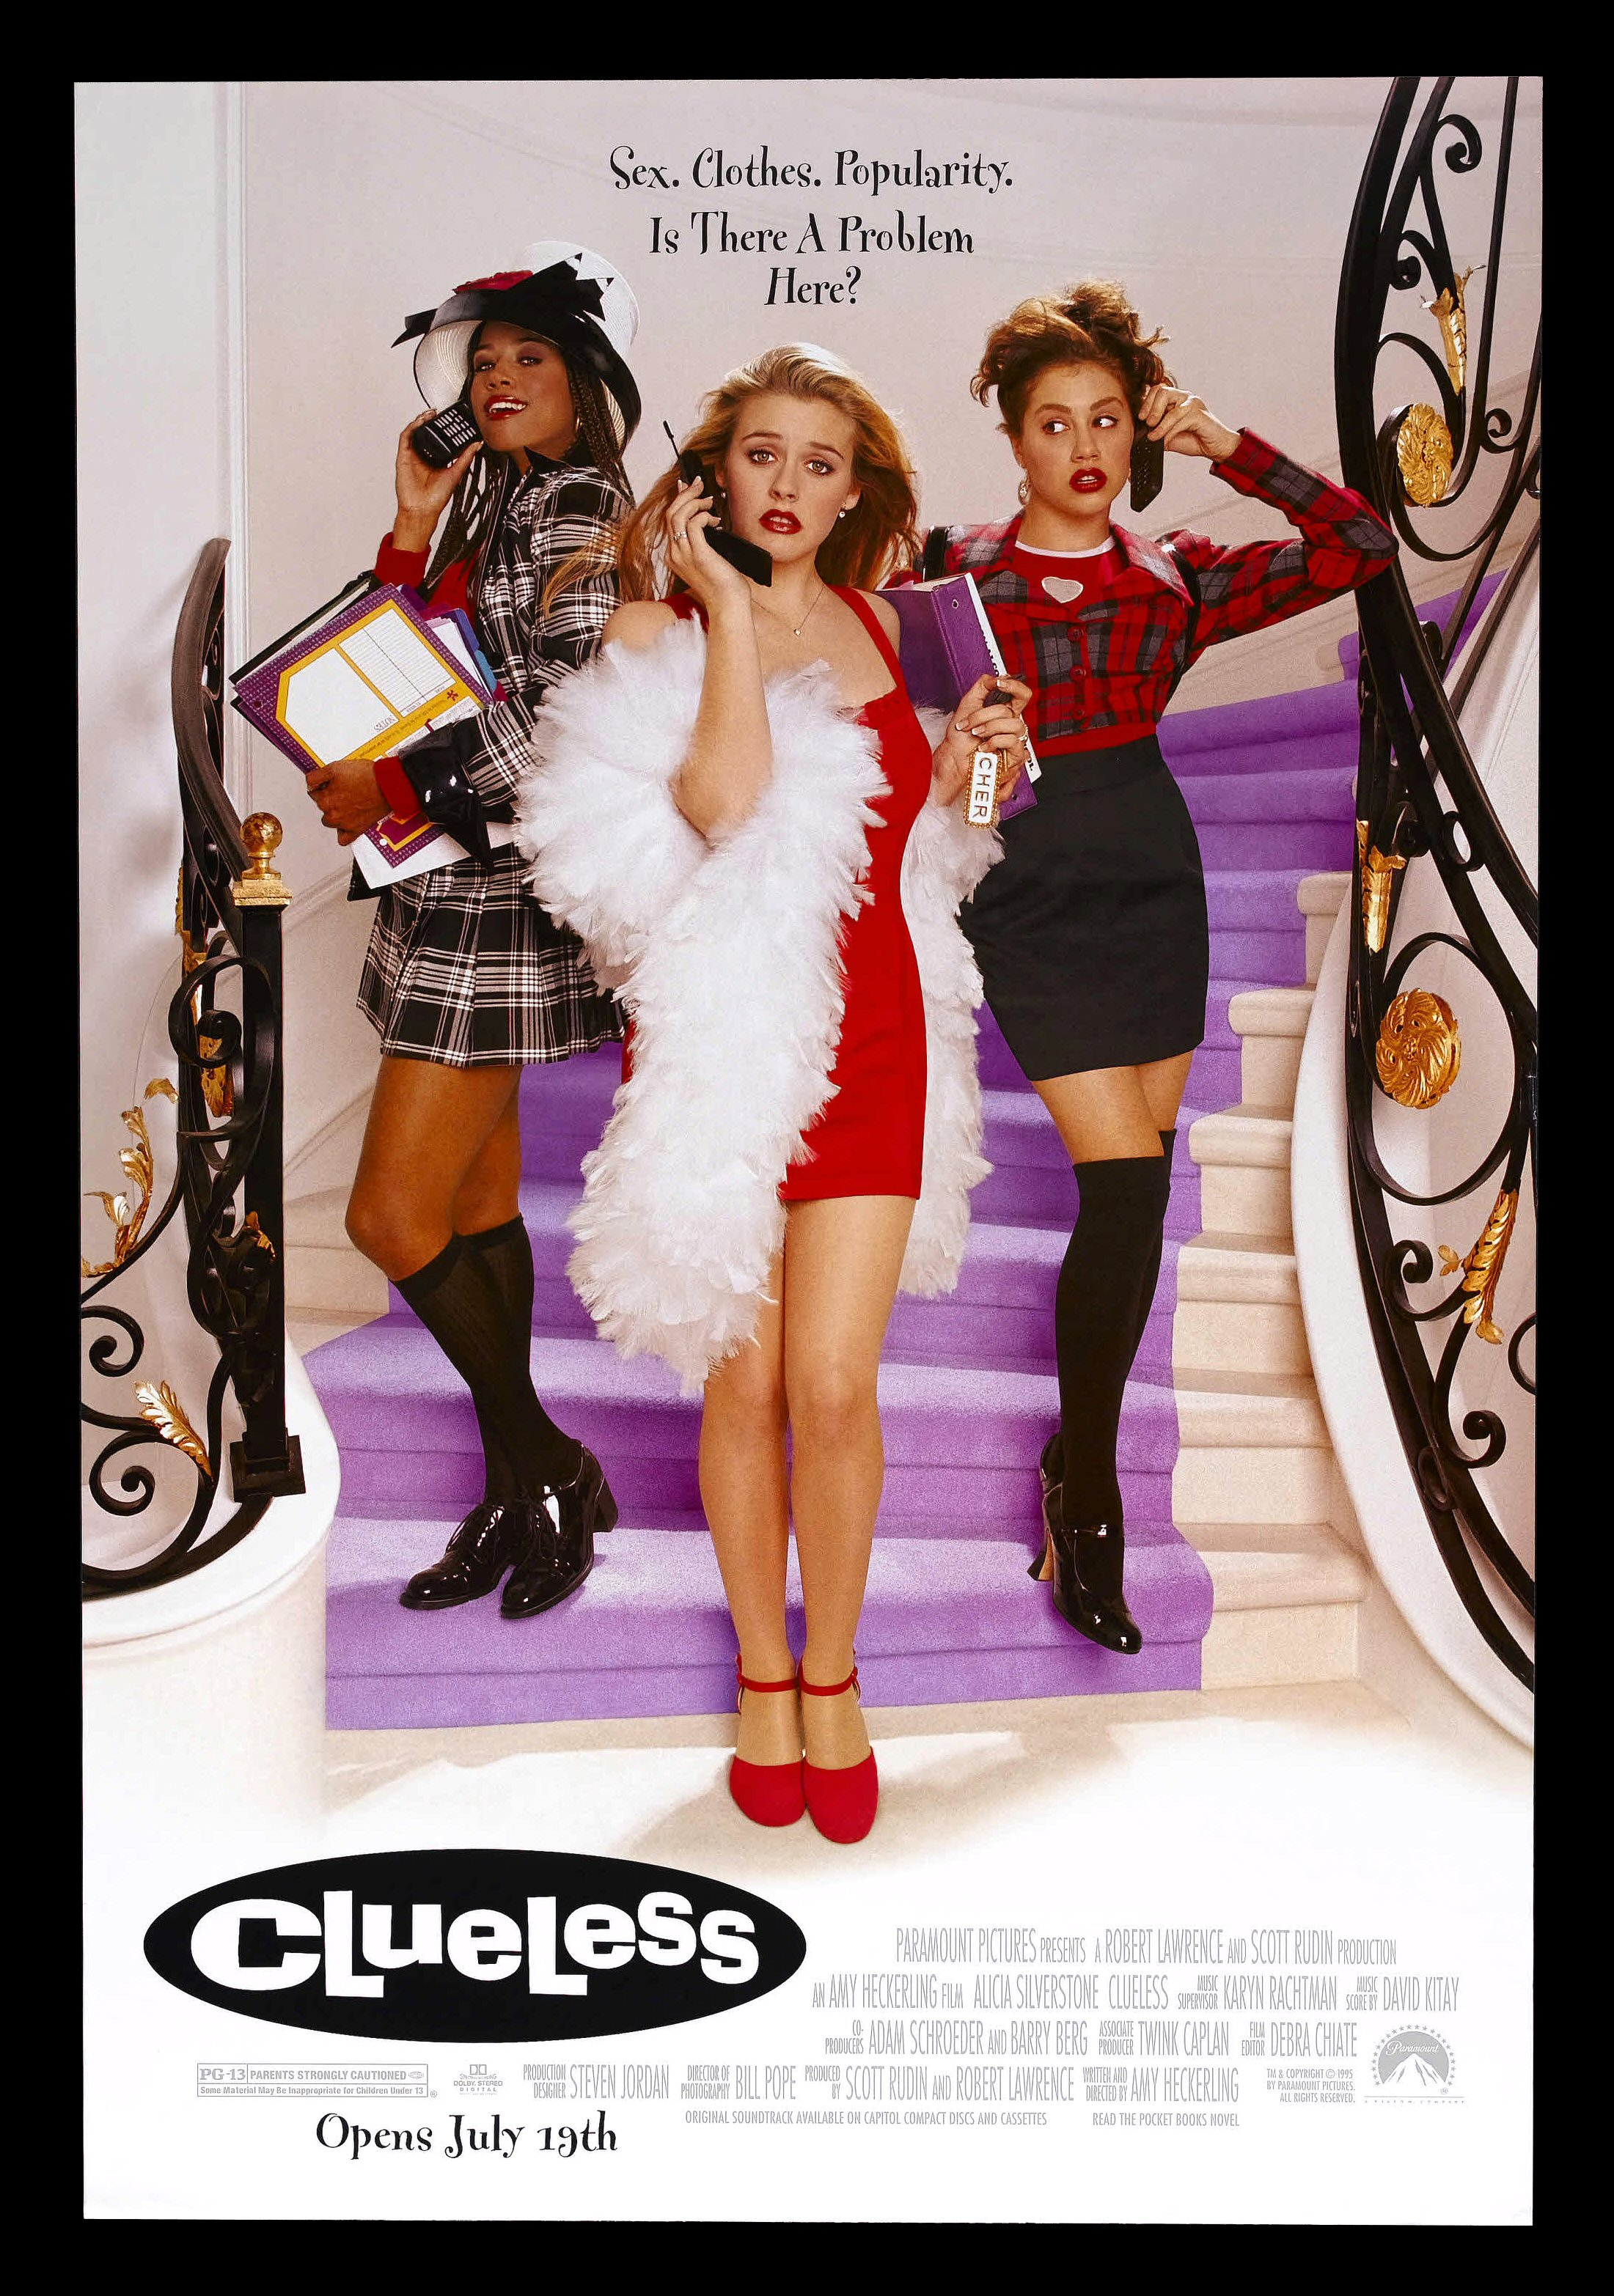 emma and clueless transformation Free essay: the universality of themes pervading both emma and clueless in correlation with the humanistic, obviously flawed protagonists in both texts.